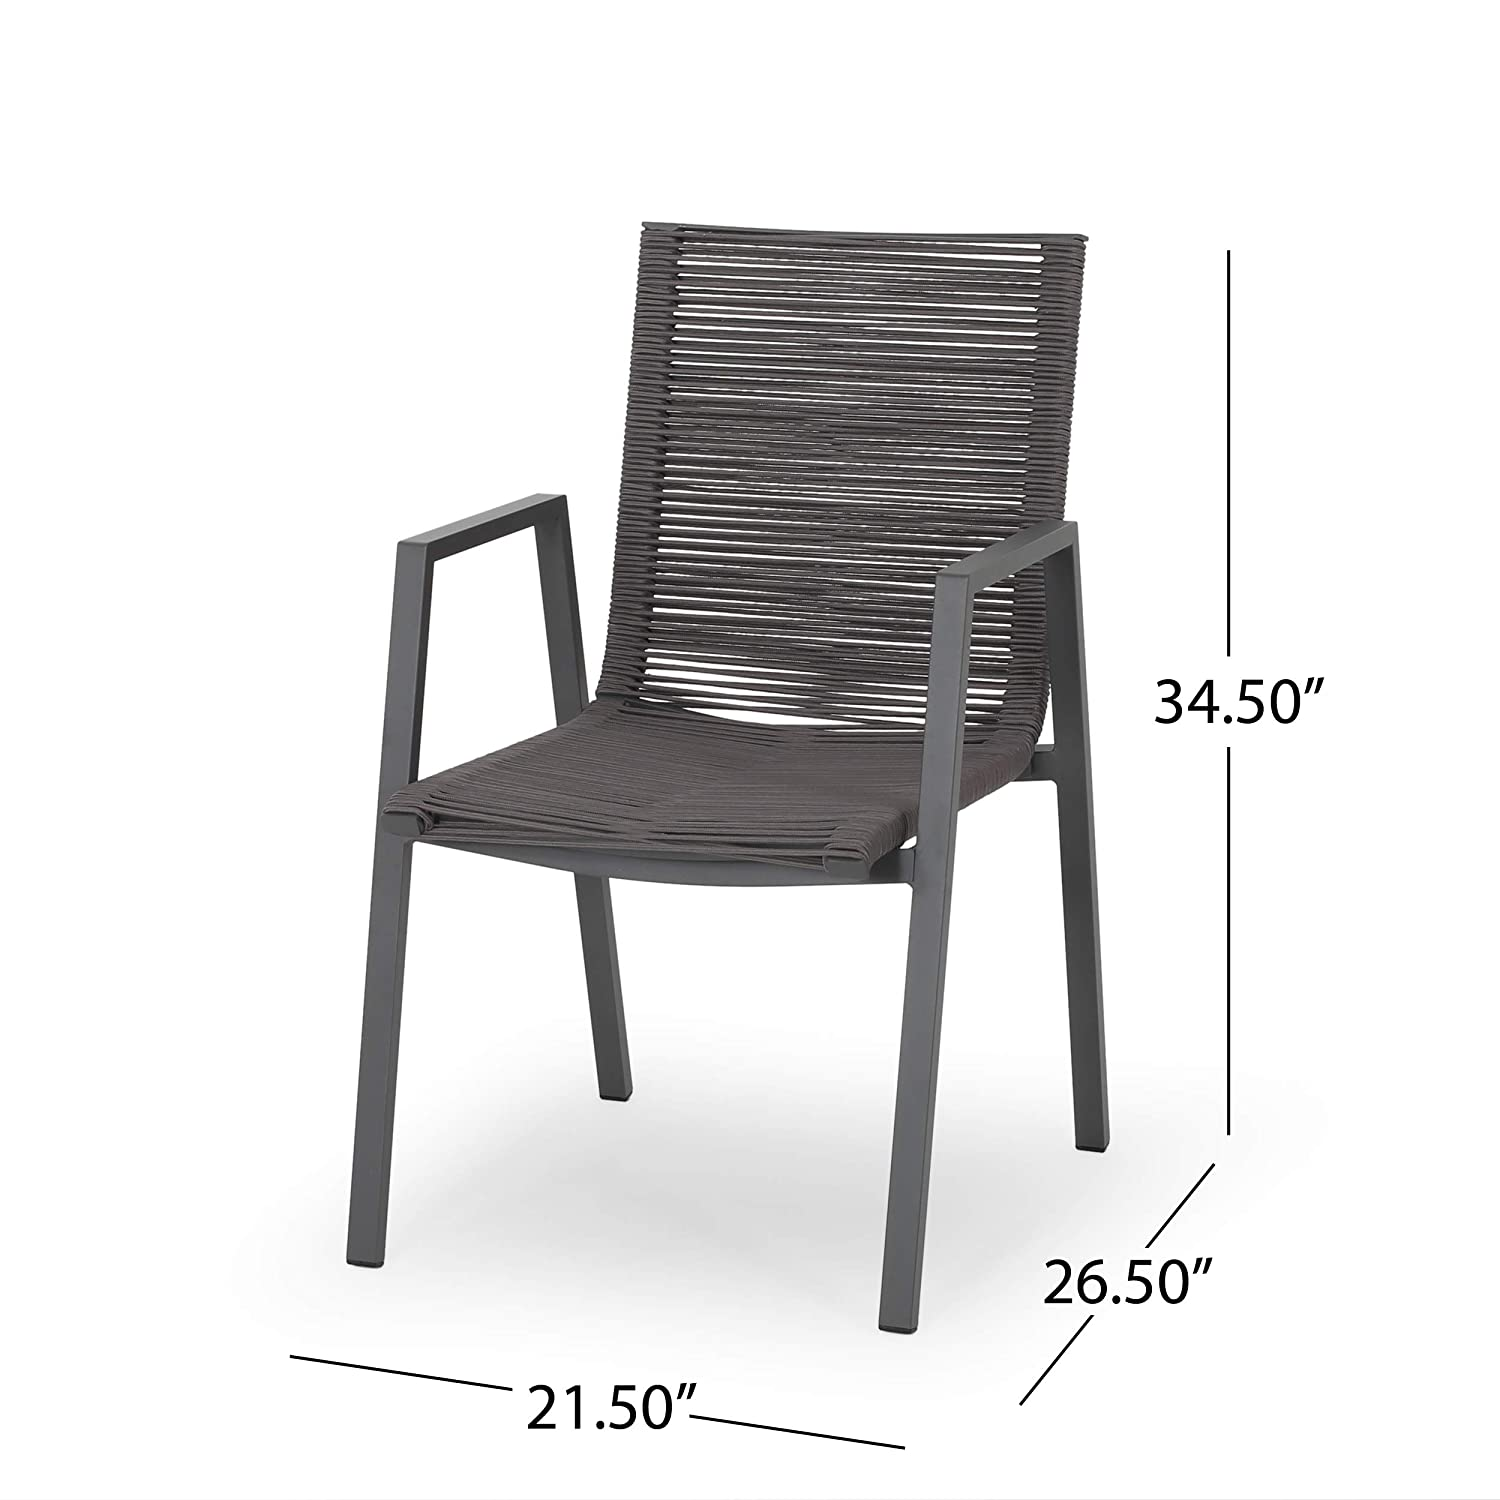 Patio Dining Chairs Elma Outdoor Modern Aluminum Dining Chair with ...